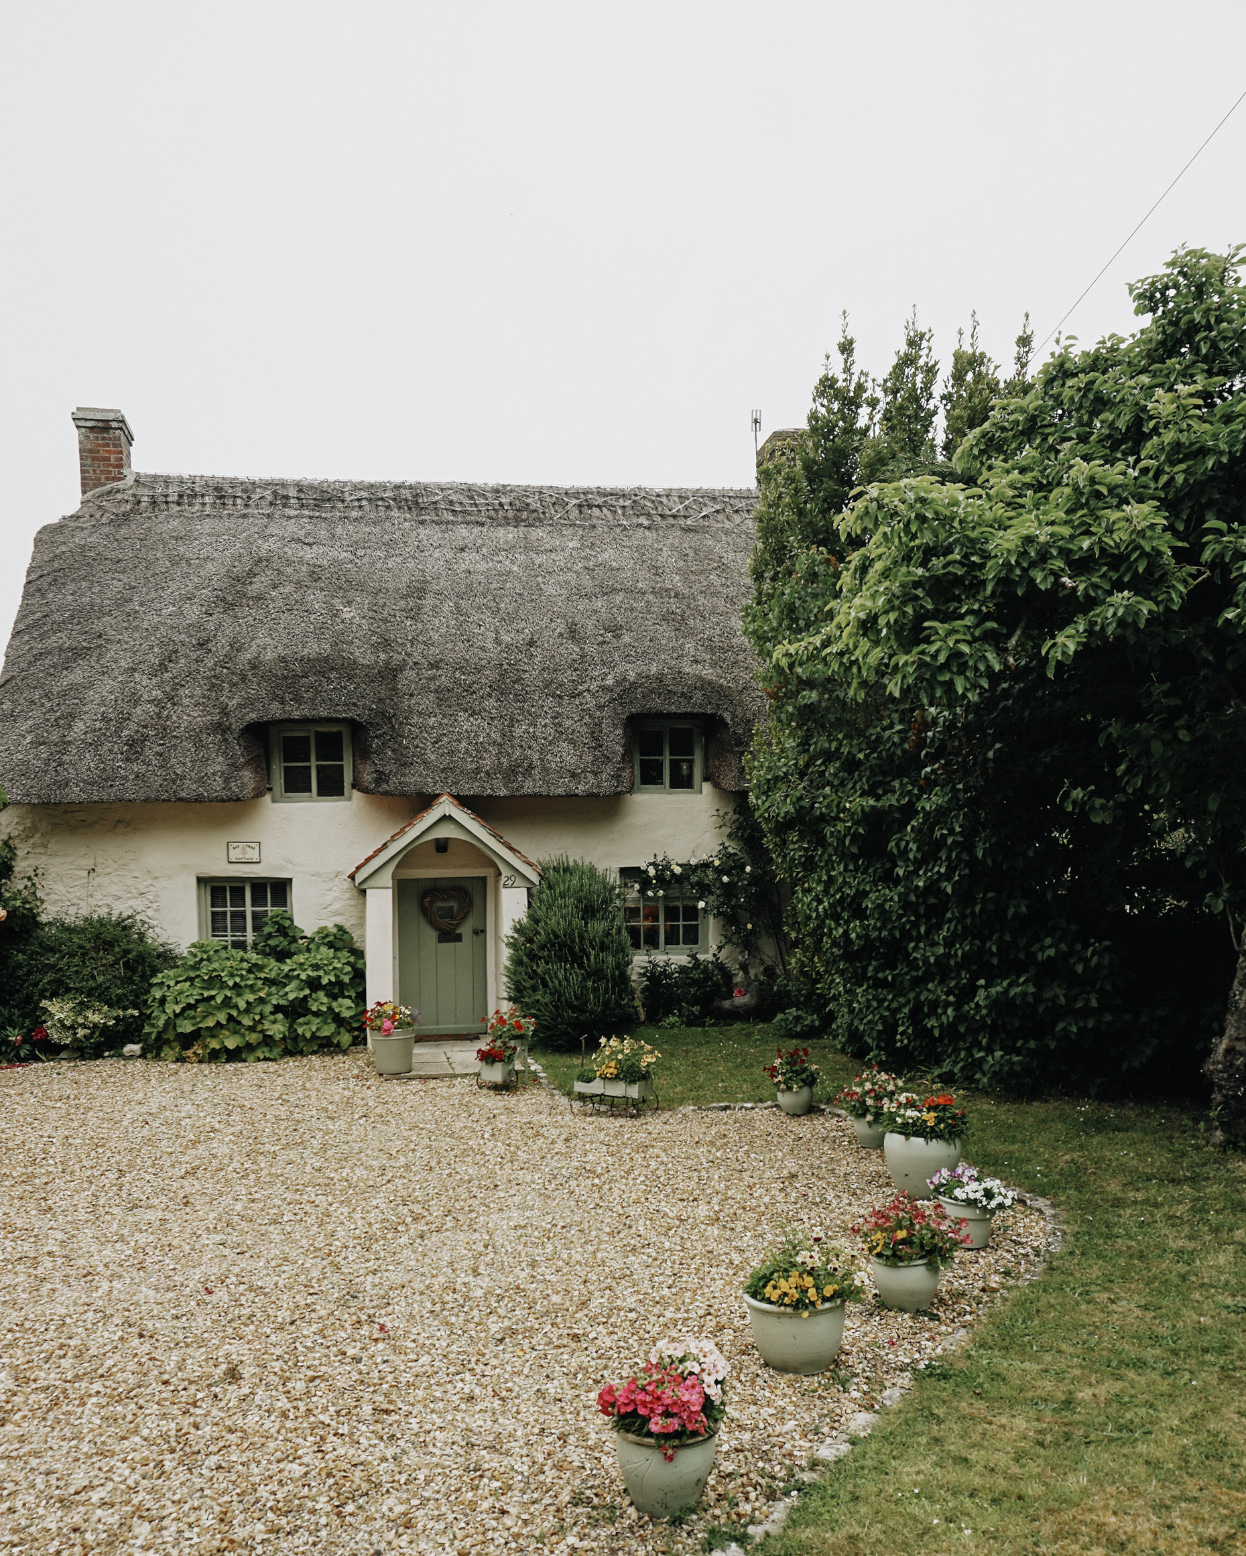 Just one of the many perfect cottages in Dorset